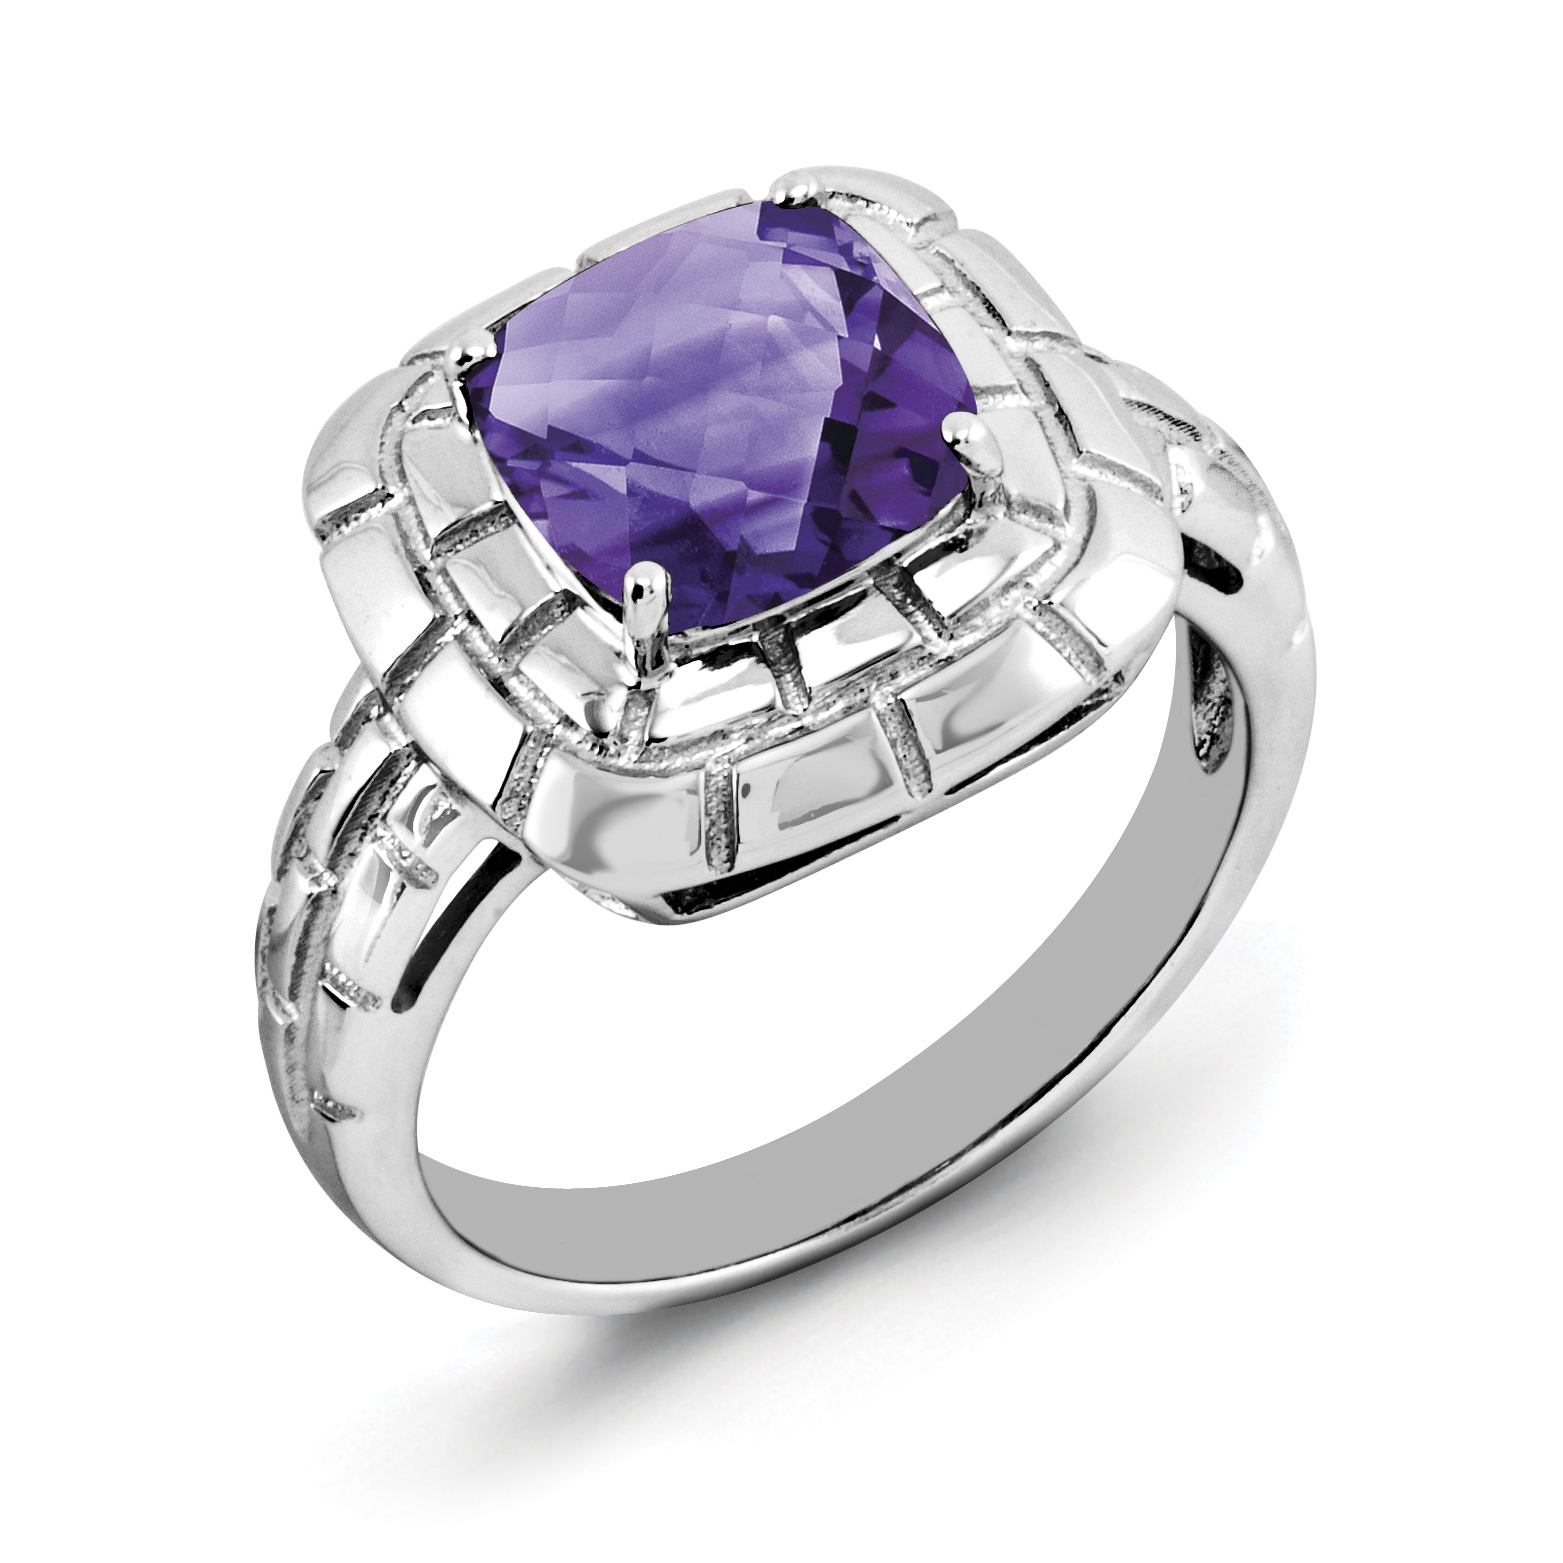 925 Sterling Silver Rhodium-plated Checker-Cut Amethyst Ring - image 2 of 2